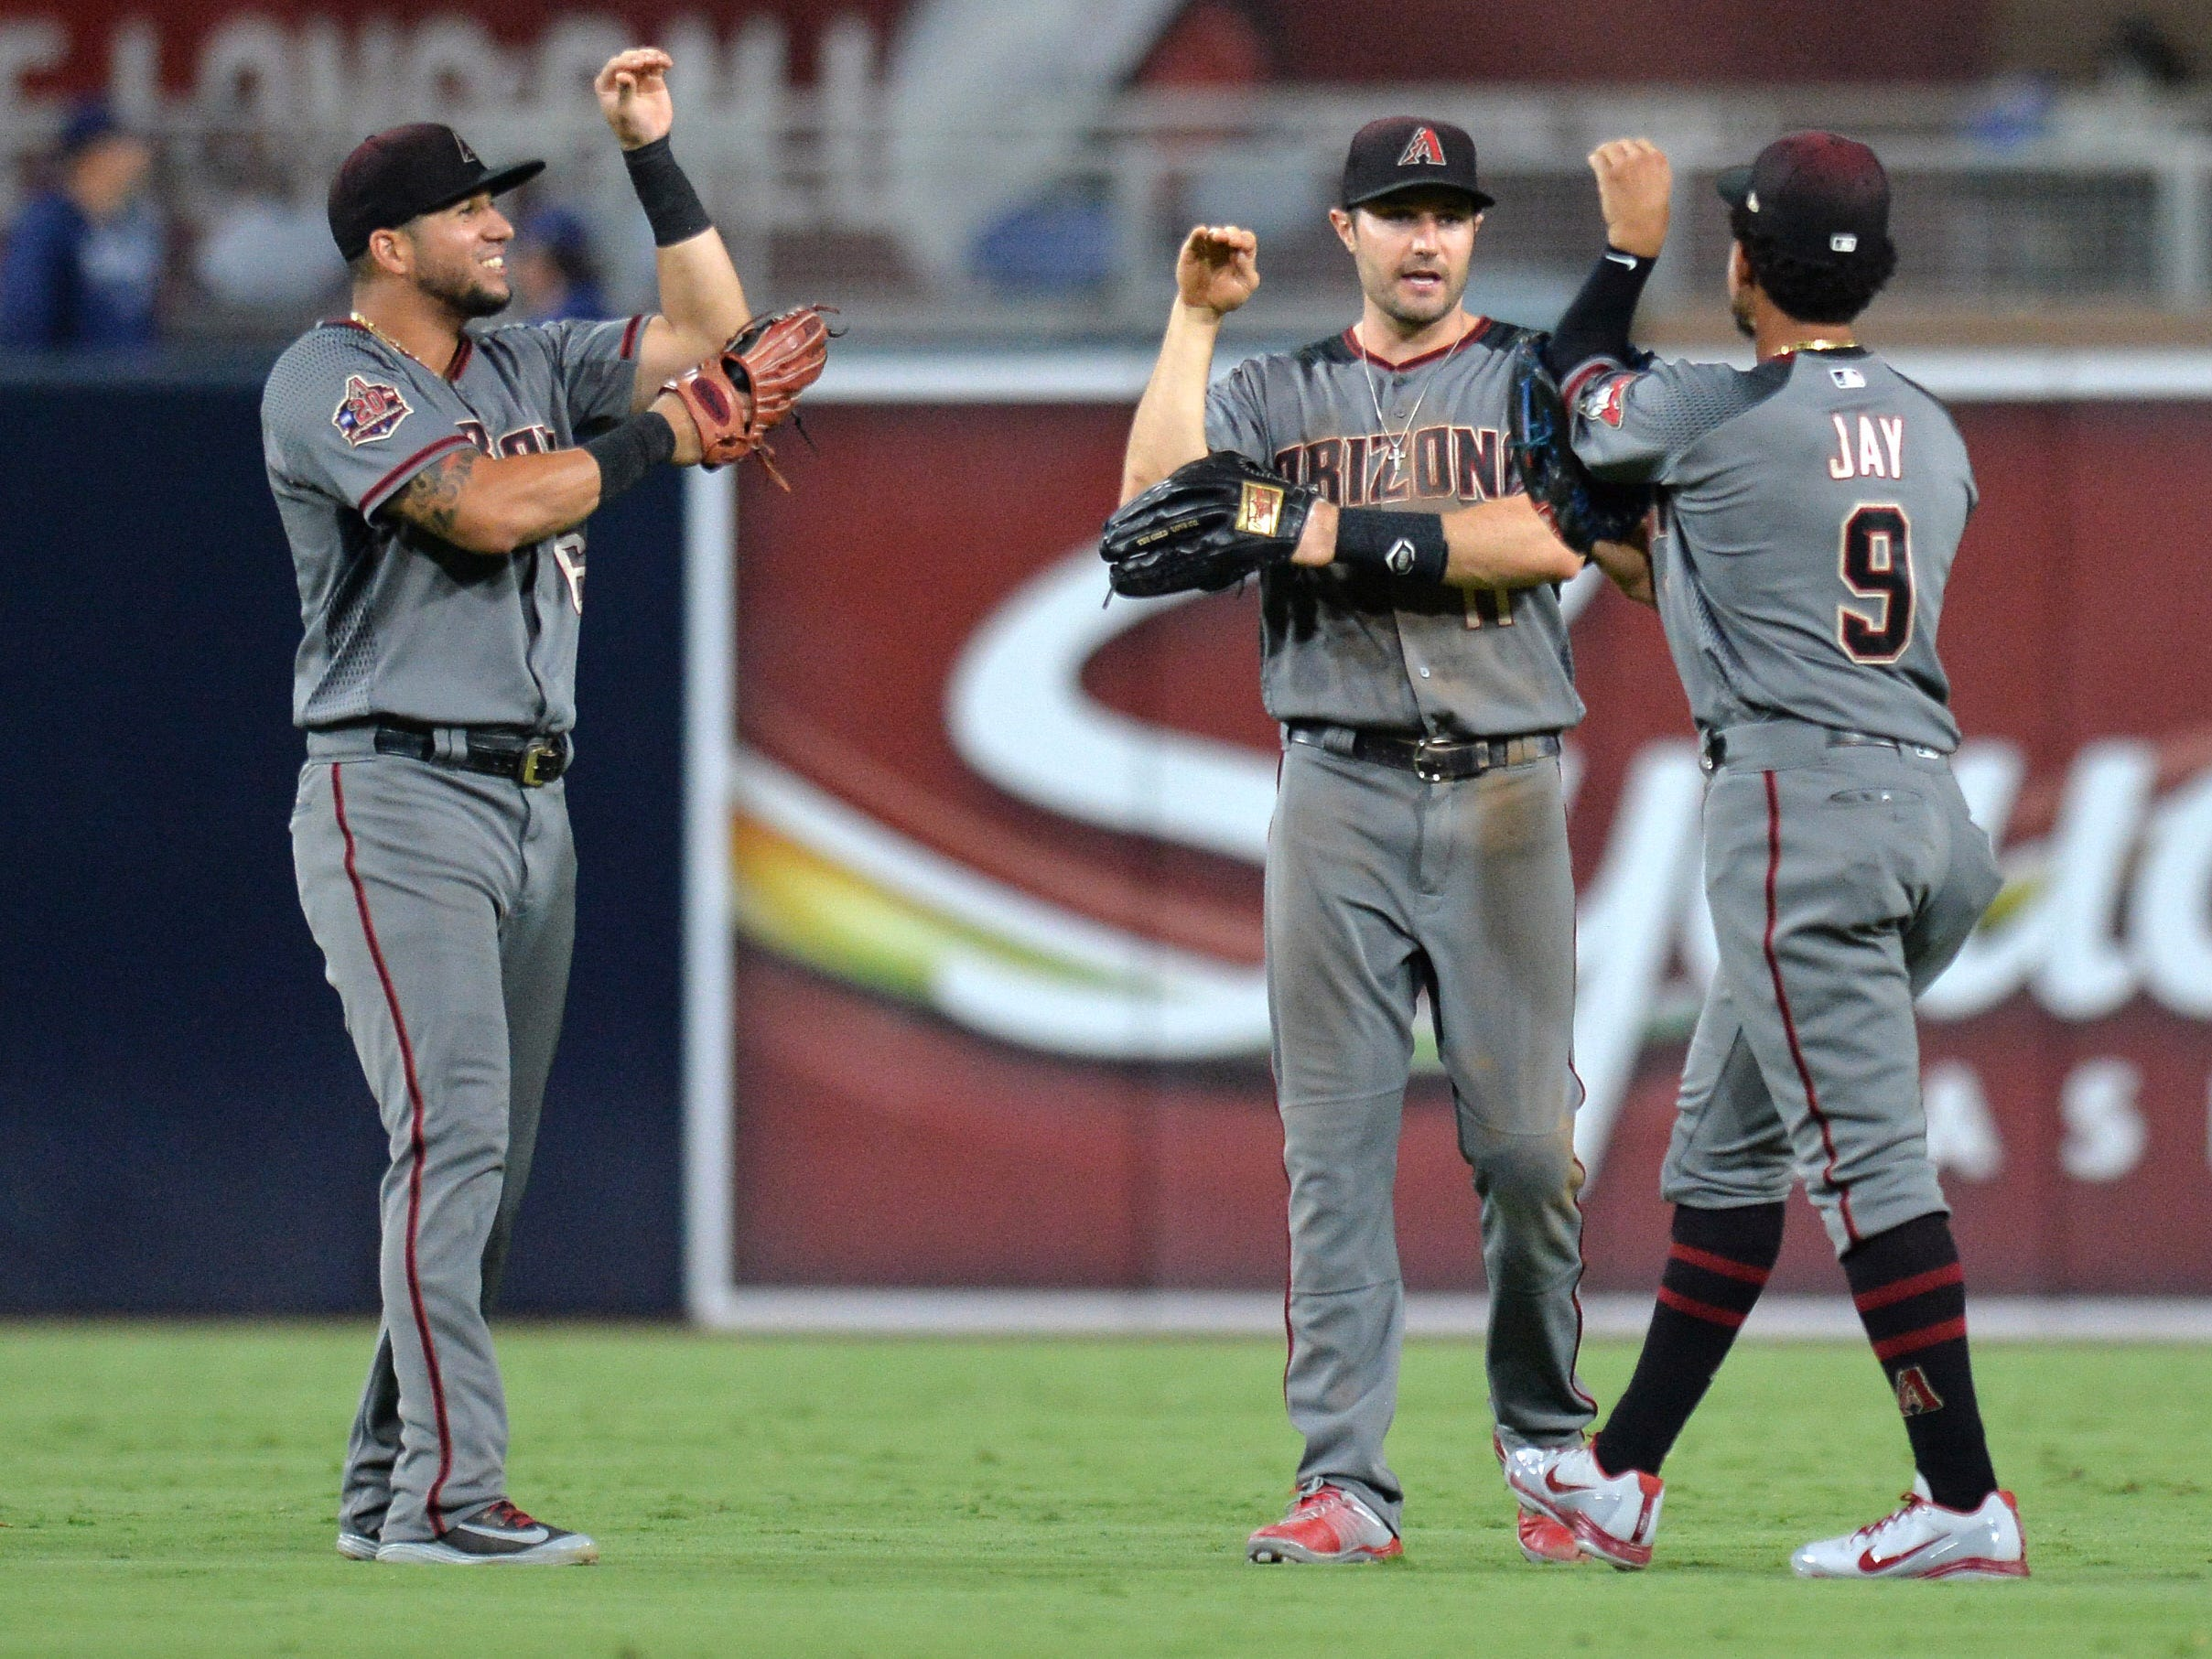 Aug 16, 2018; San Diego, CA, USA; Arizona Diamondbacks left fielder David Peralta (left) center fielder A.J. Pollock (center) and right fielder Jon Jay (9) celebrate a 5-1 win over the San Diego Padres at Petco Park.